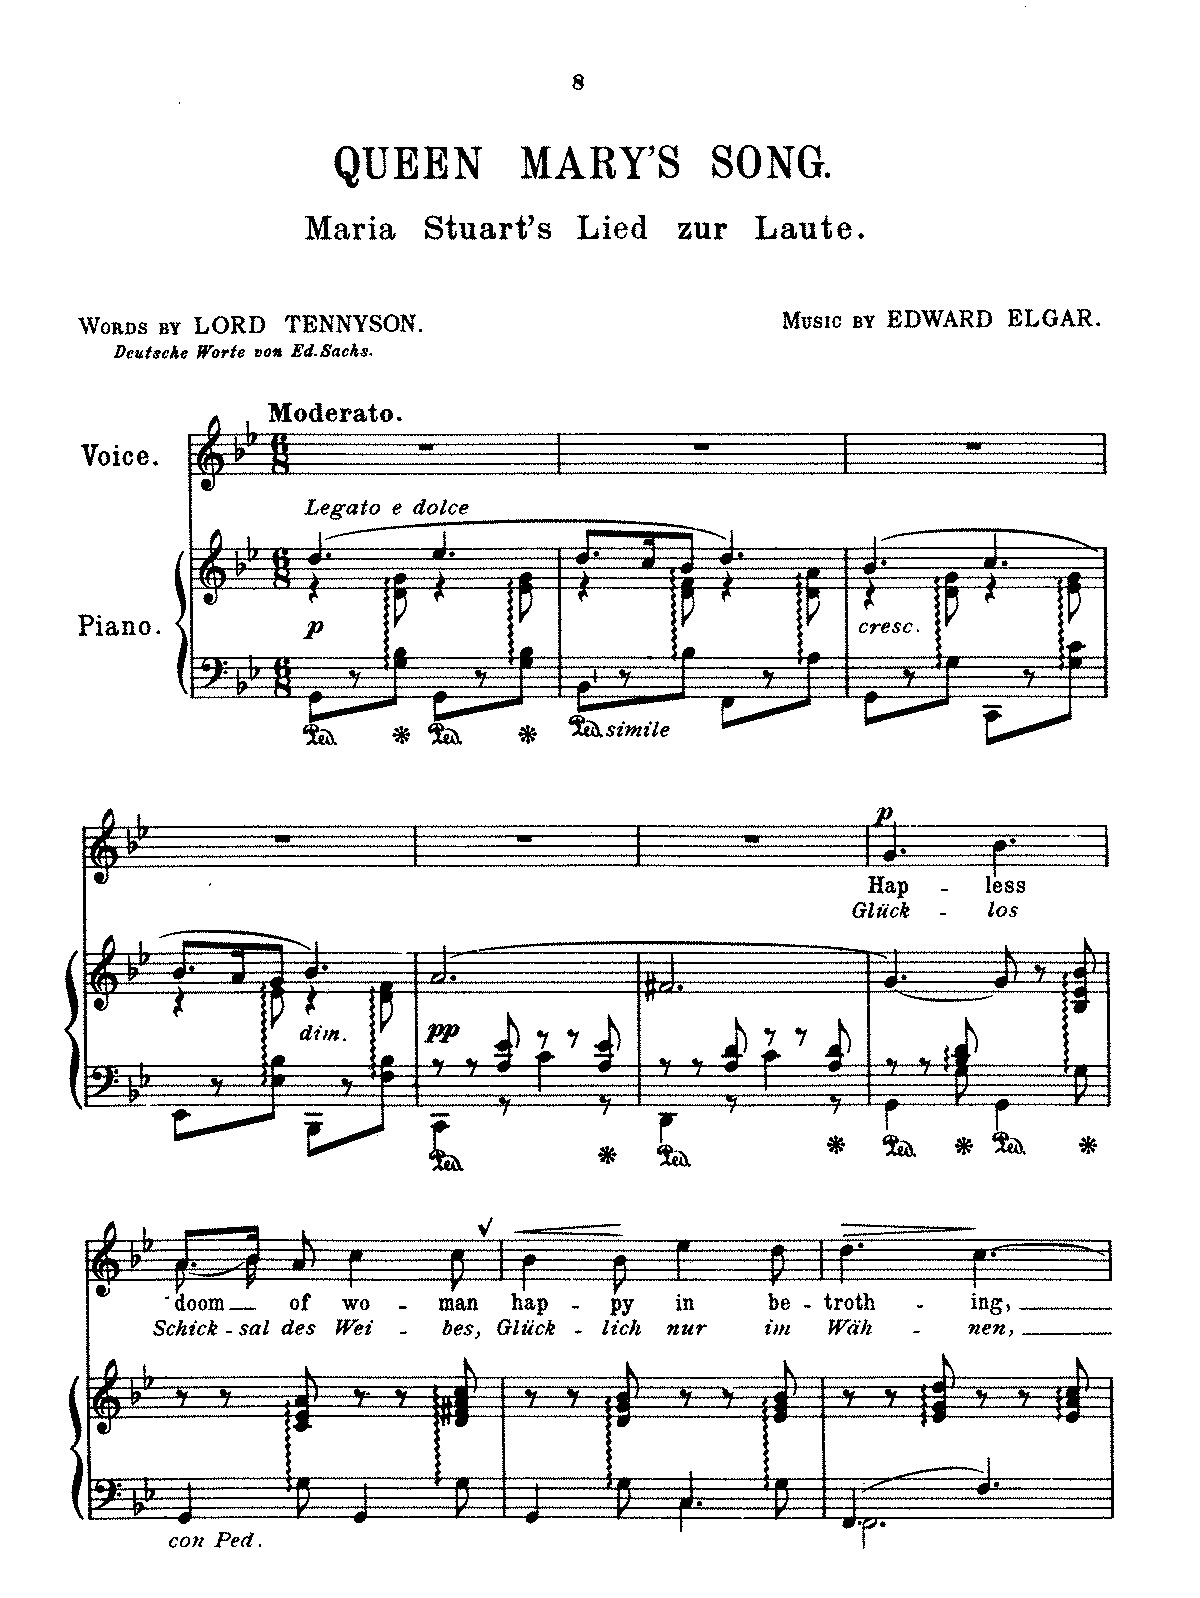 PMLP118040-Elgar - Queen Mary's song (voice and piano).pdf